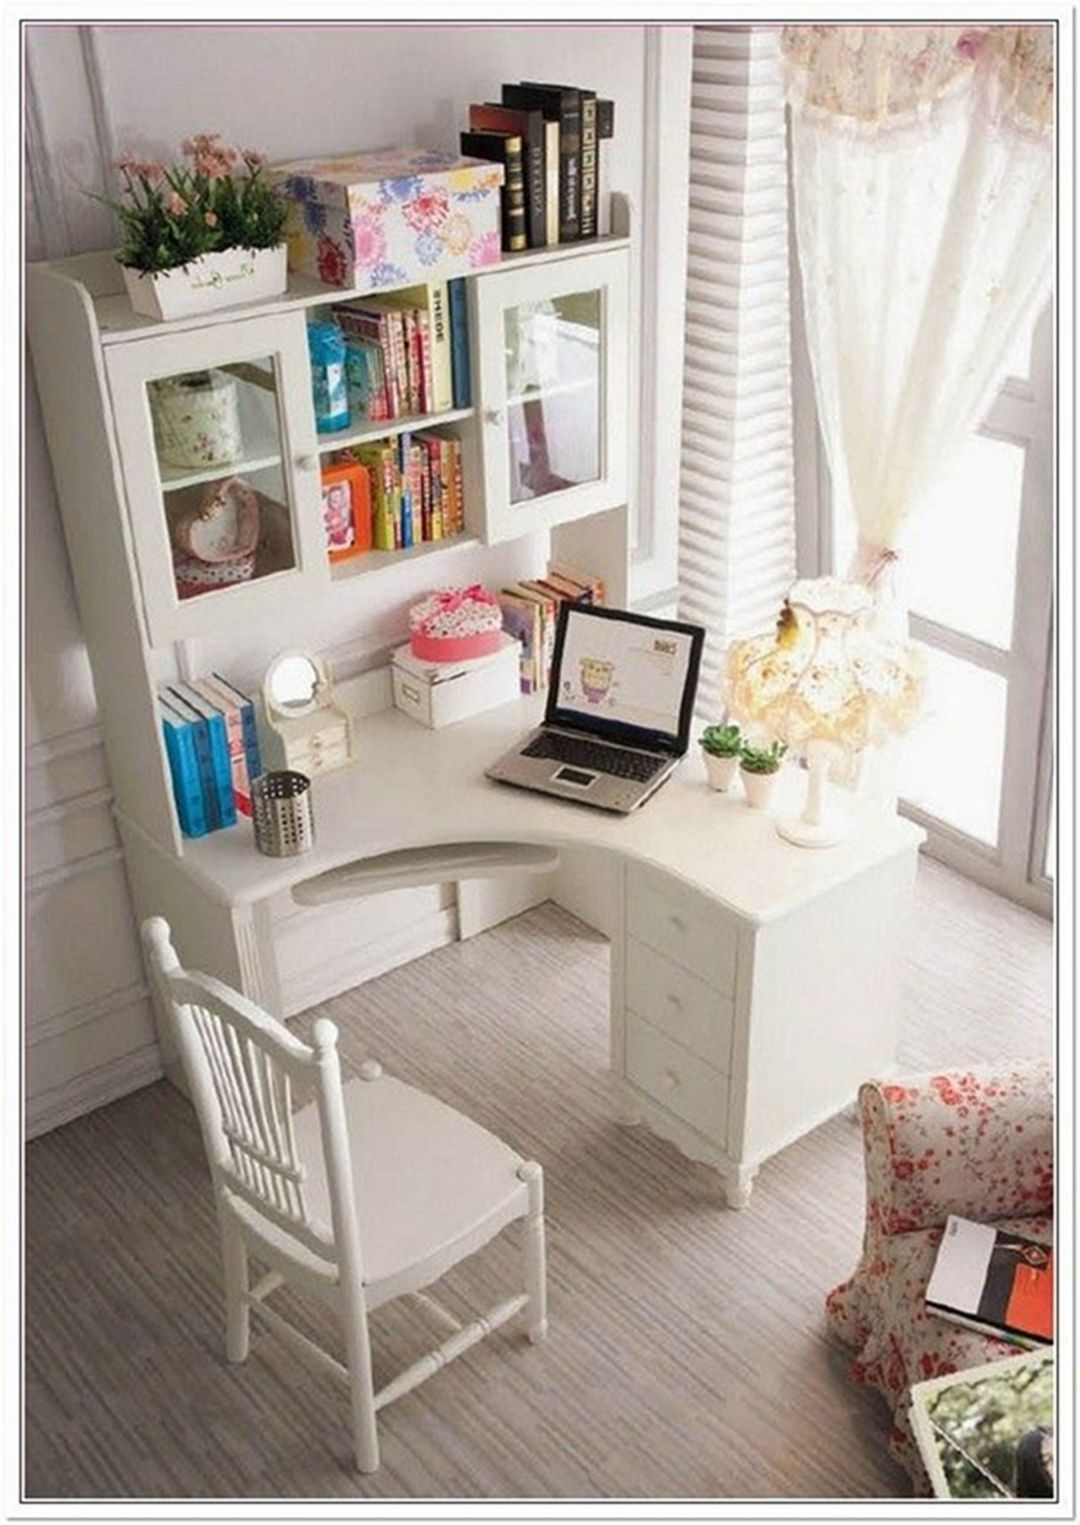 15 Fantastic Small Bedroom Desk Designs For Small Bedroom Ideas Decor It S Small Bedroom Desk Desks For Small Spaces Bedroom Desk